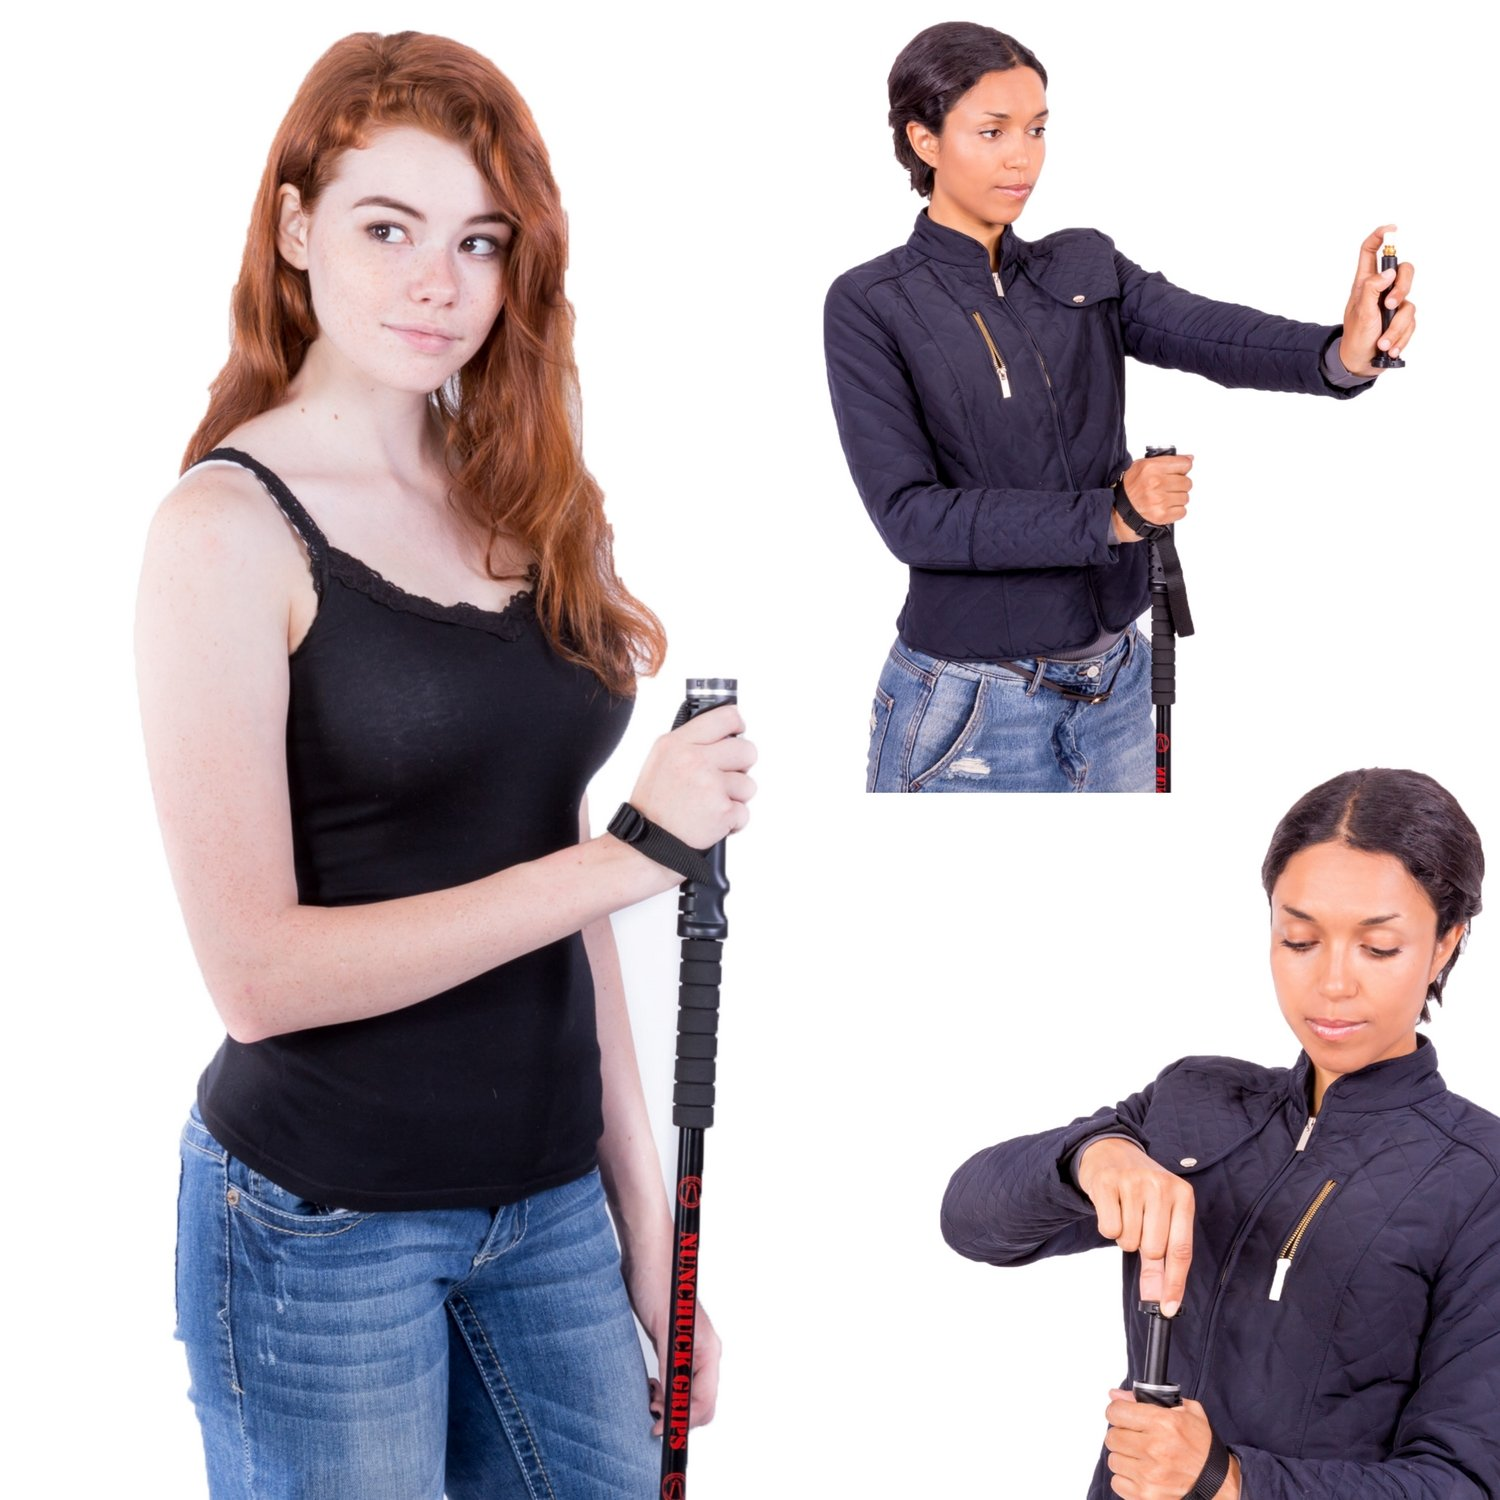 Nunchuckgrips Nunchuck Grips Hiking Walking Stick, Trekking Pole with Interchangeable Pepper Spray Accessory Hidden Within The Grip, Single 1 Stick